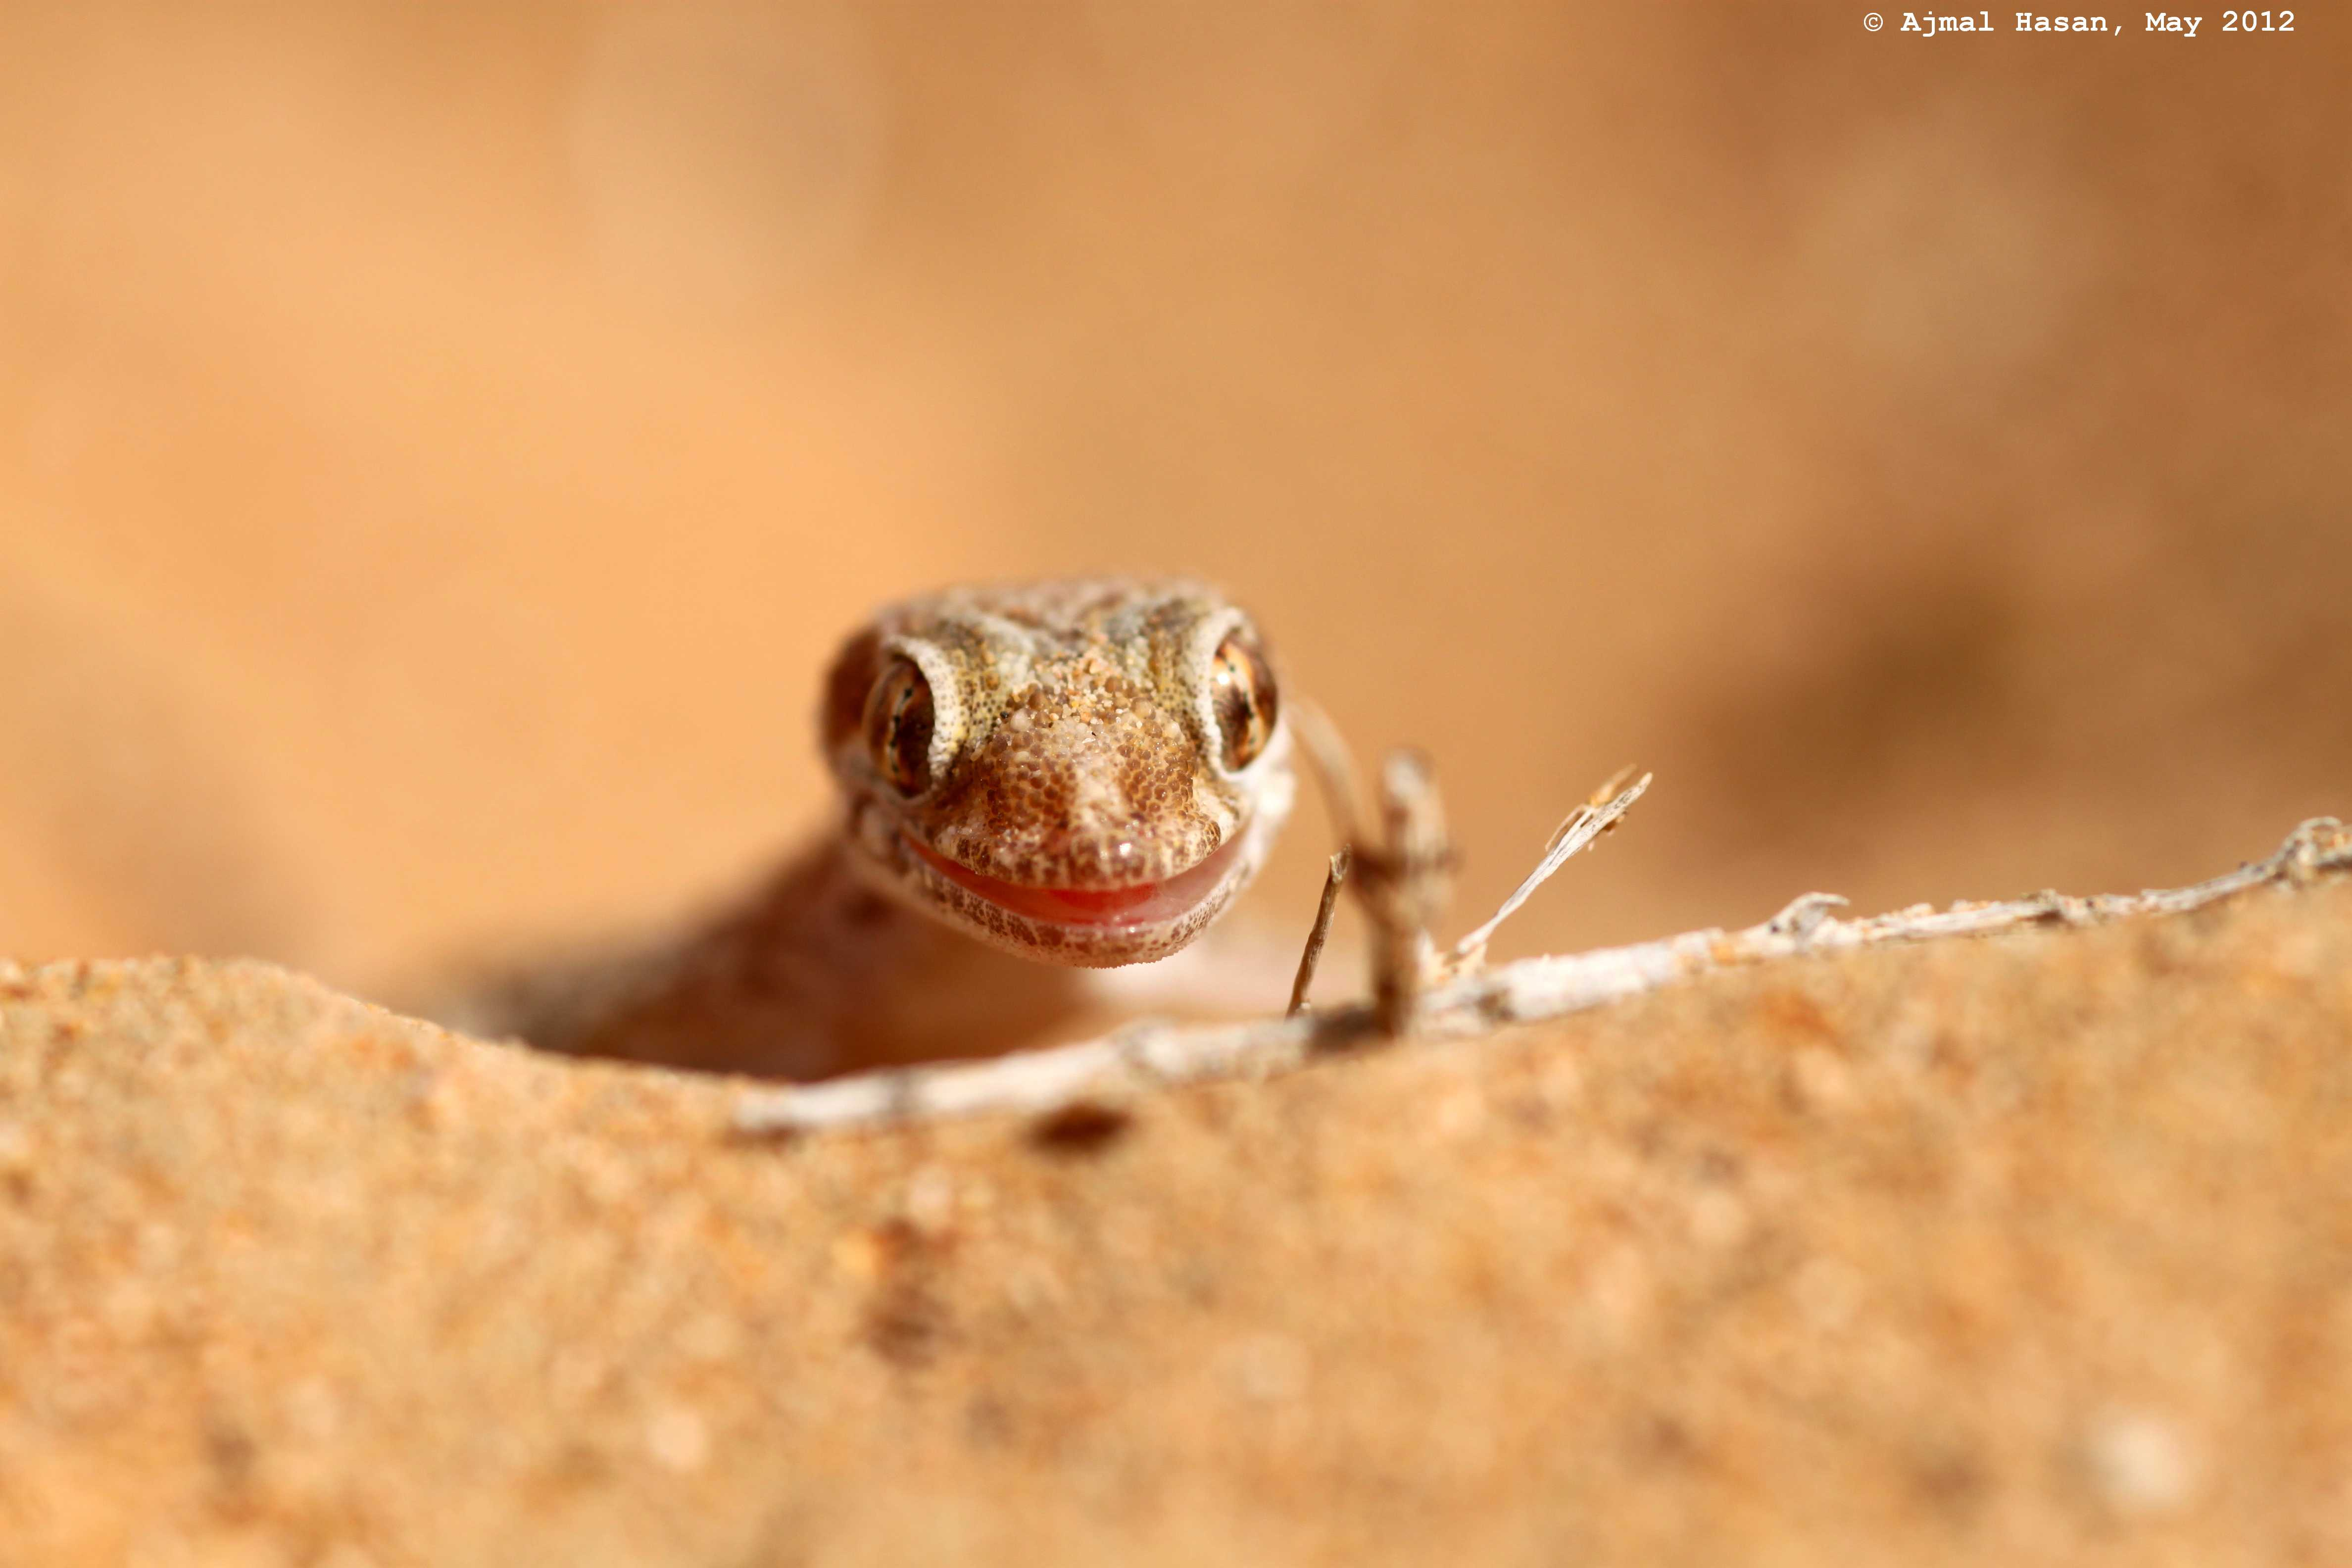 Baluch ground gecko striking a pose